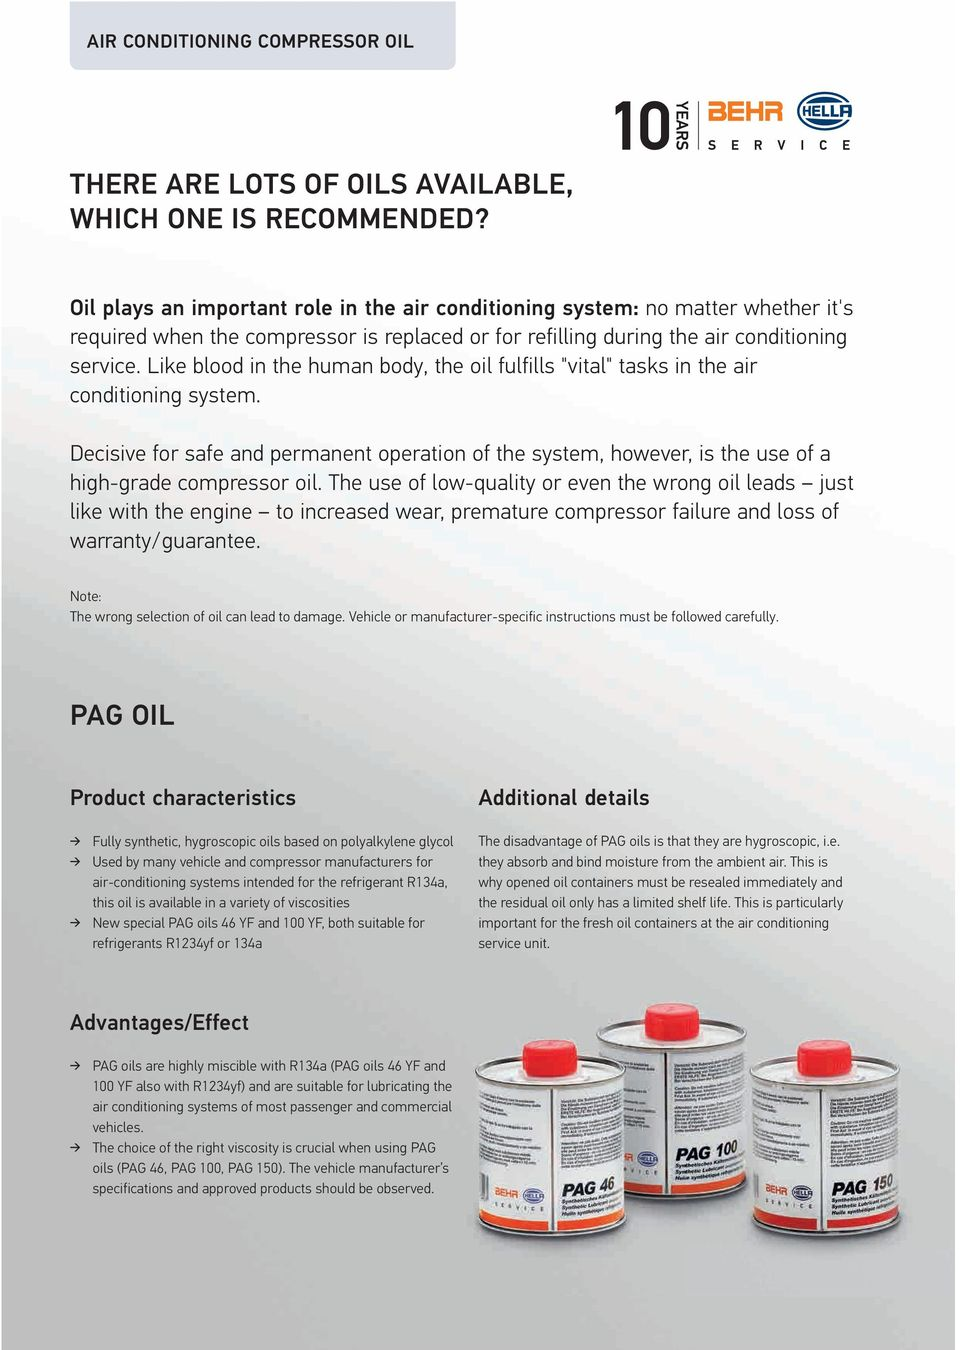 AIR CONDITIONING COMPRESSOR OIL - PDF